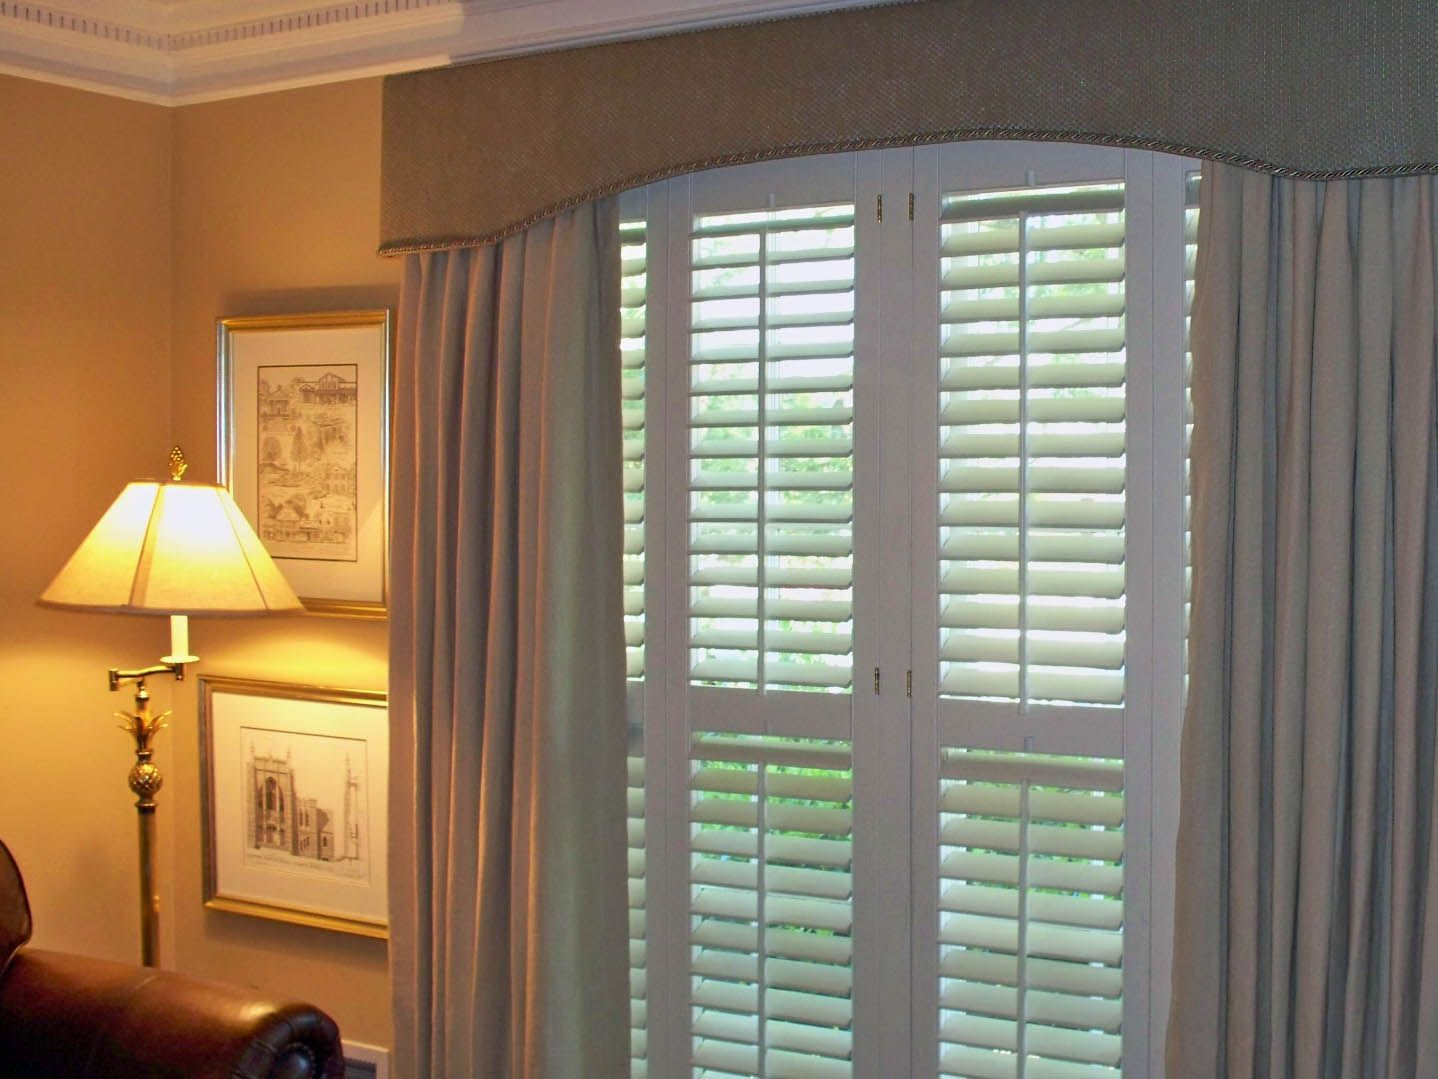 D Ries Curtains And Cornice Board